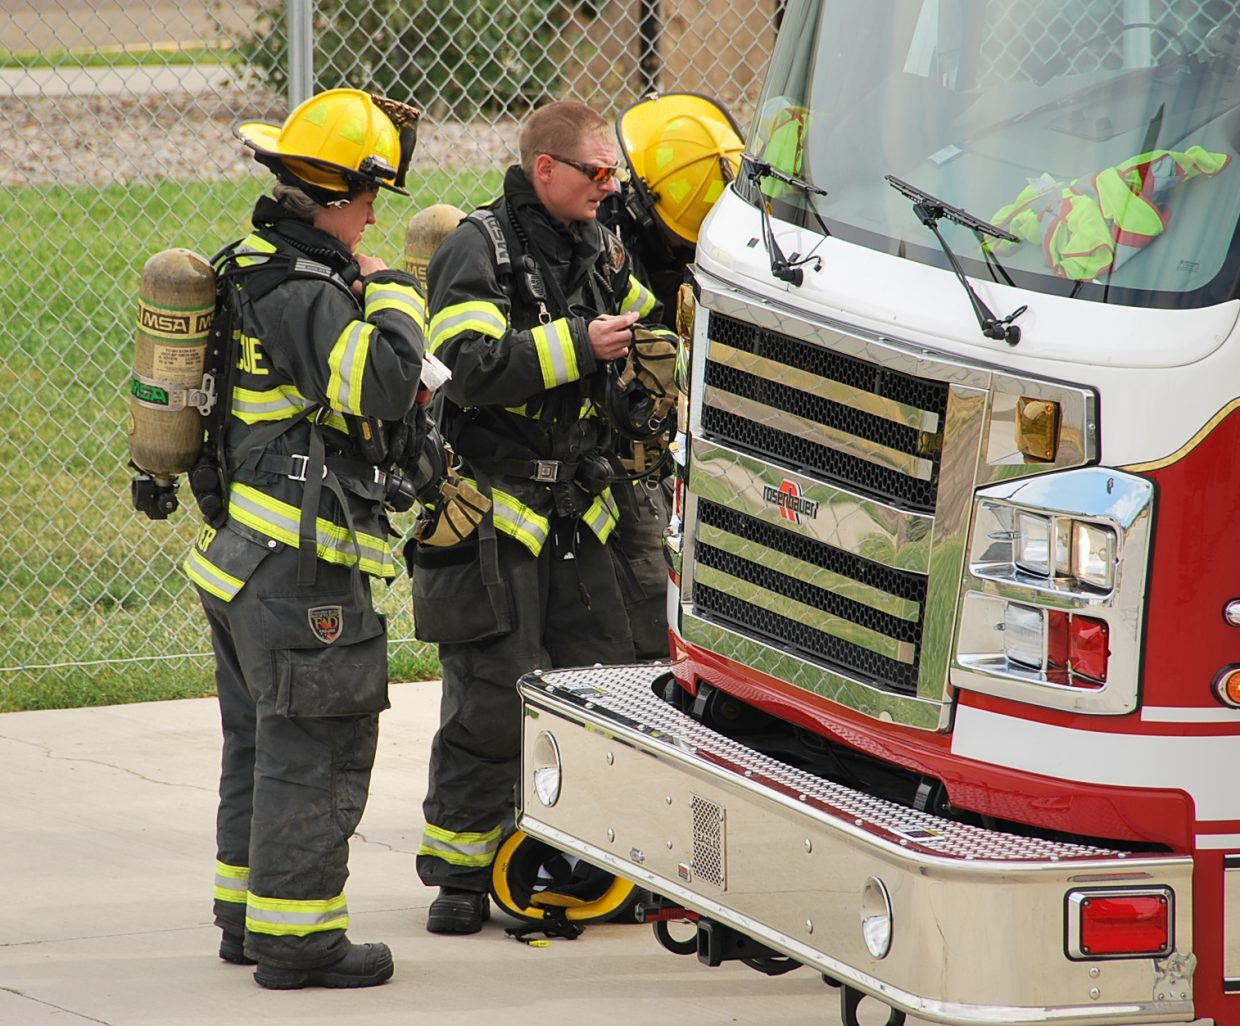 Craig firefighters gear up and check each others equipment before performing a rescue.